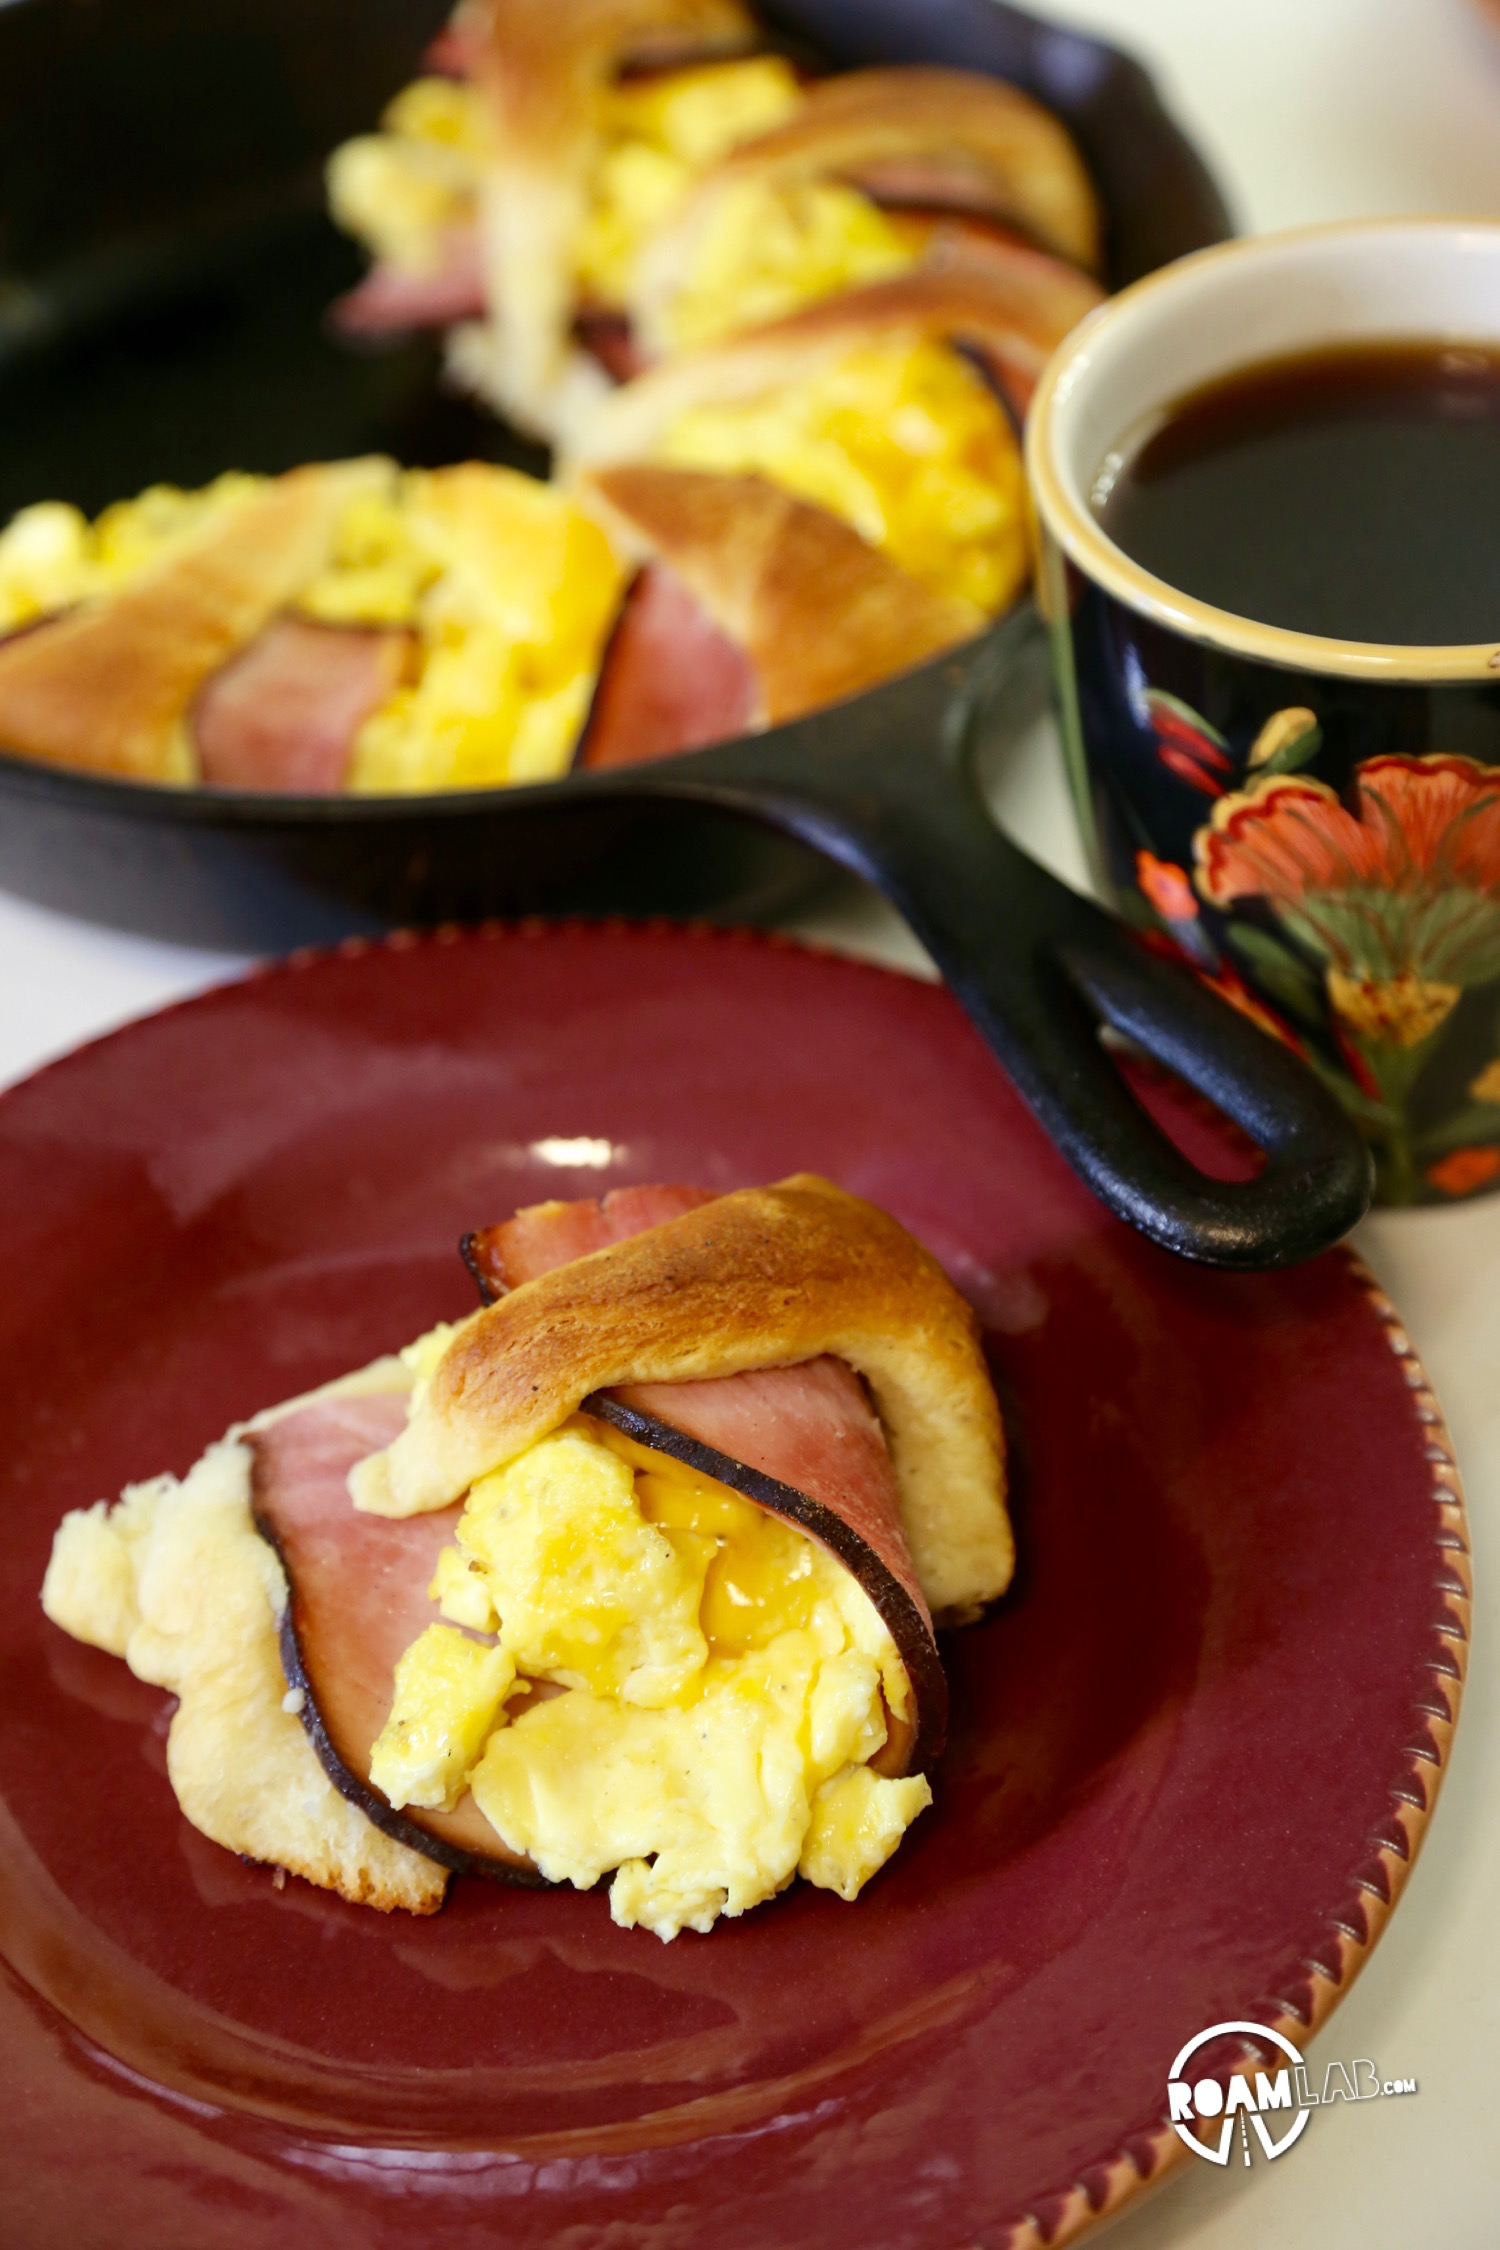 We had a left over tube of crescents and slices of ham, so we decided to bring those two together to make a fun and tasty breakfast combo: the Dutch Oven Breakfast Ring